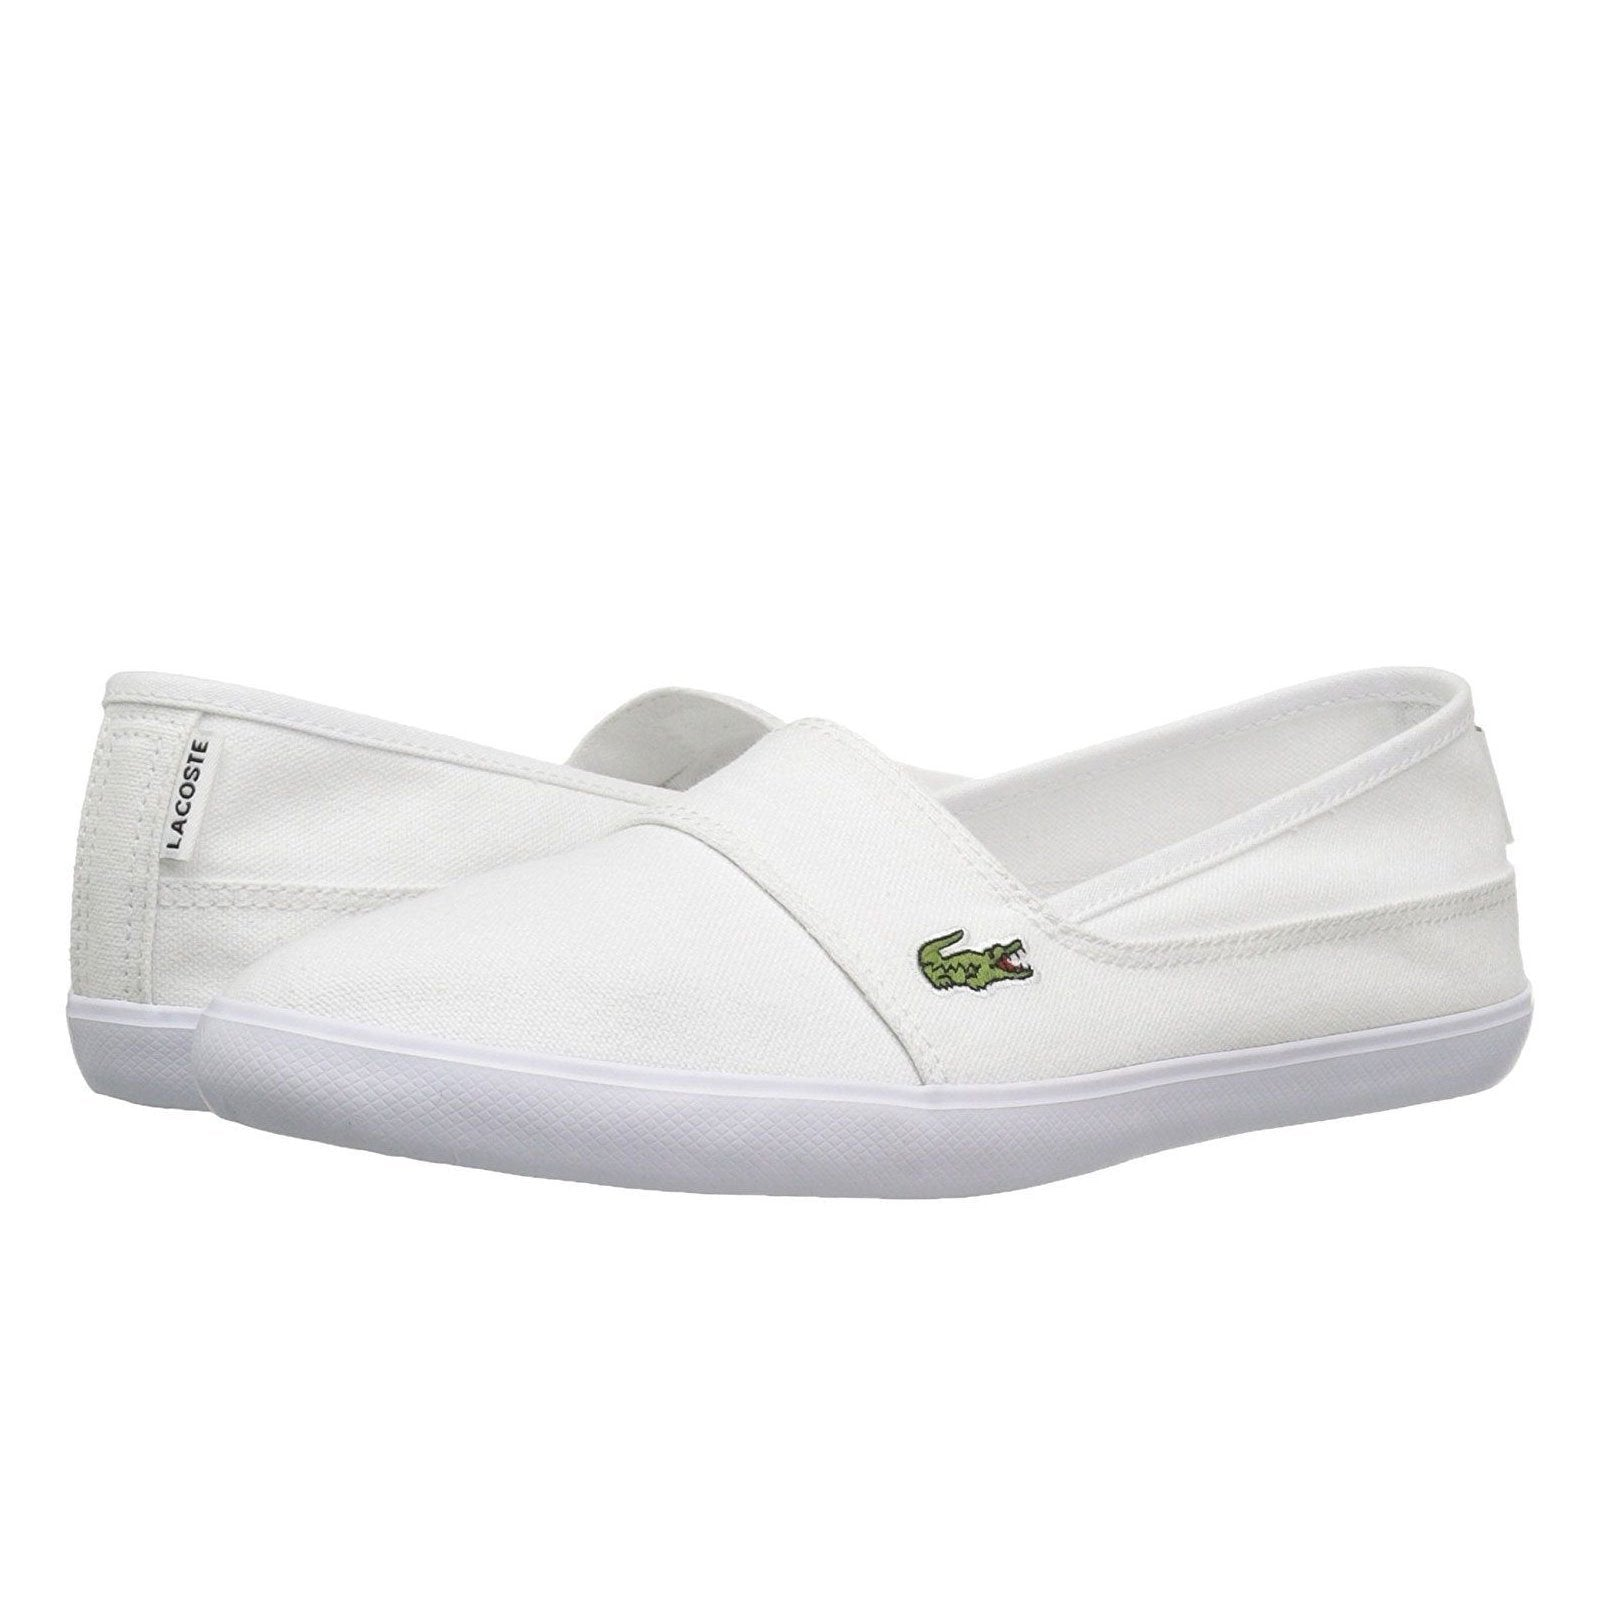 4908989d8 Lacoste Marice Bl 2 Womens Slip On in White Casual Sneakers - Top brand  shoes